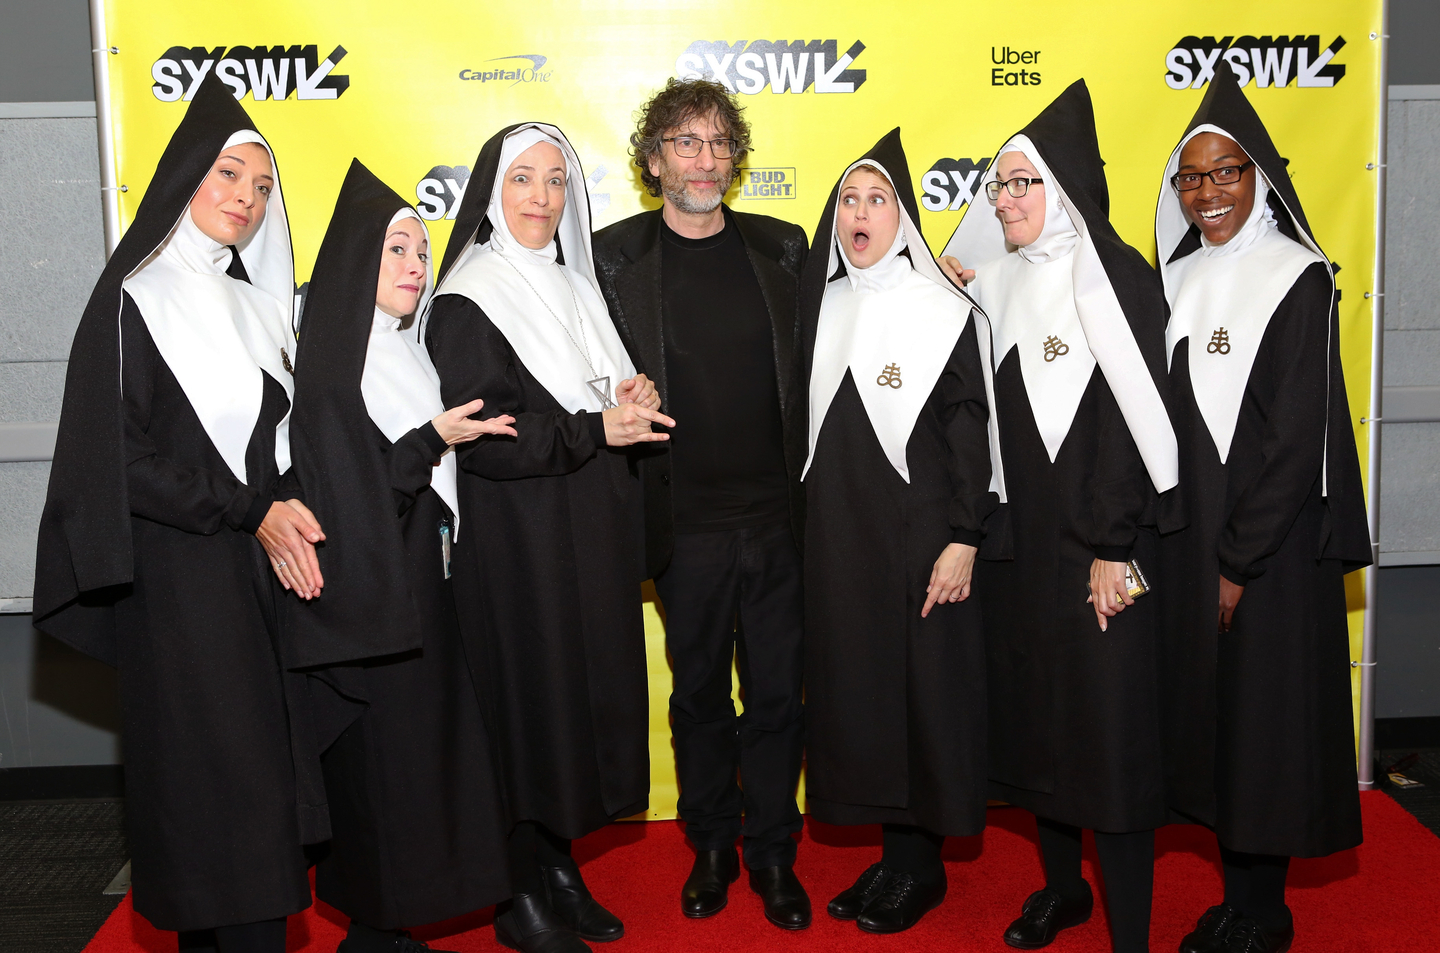 Neil Gaiman (C) with Good Omens' Chattering Order of St. Beryl.